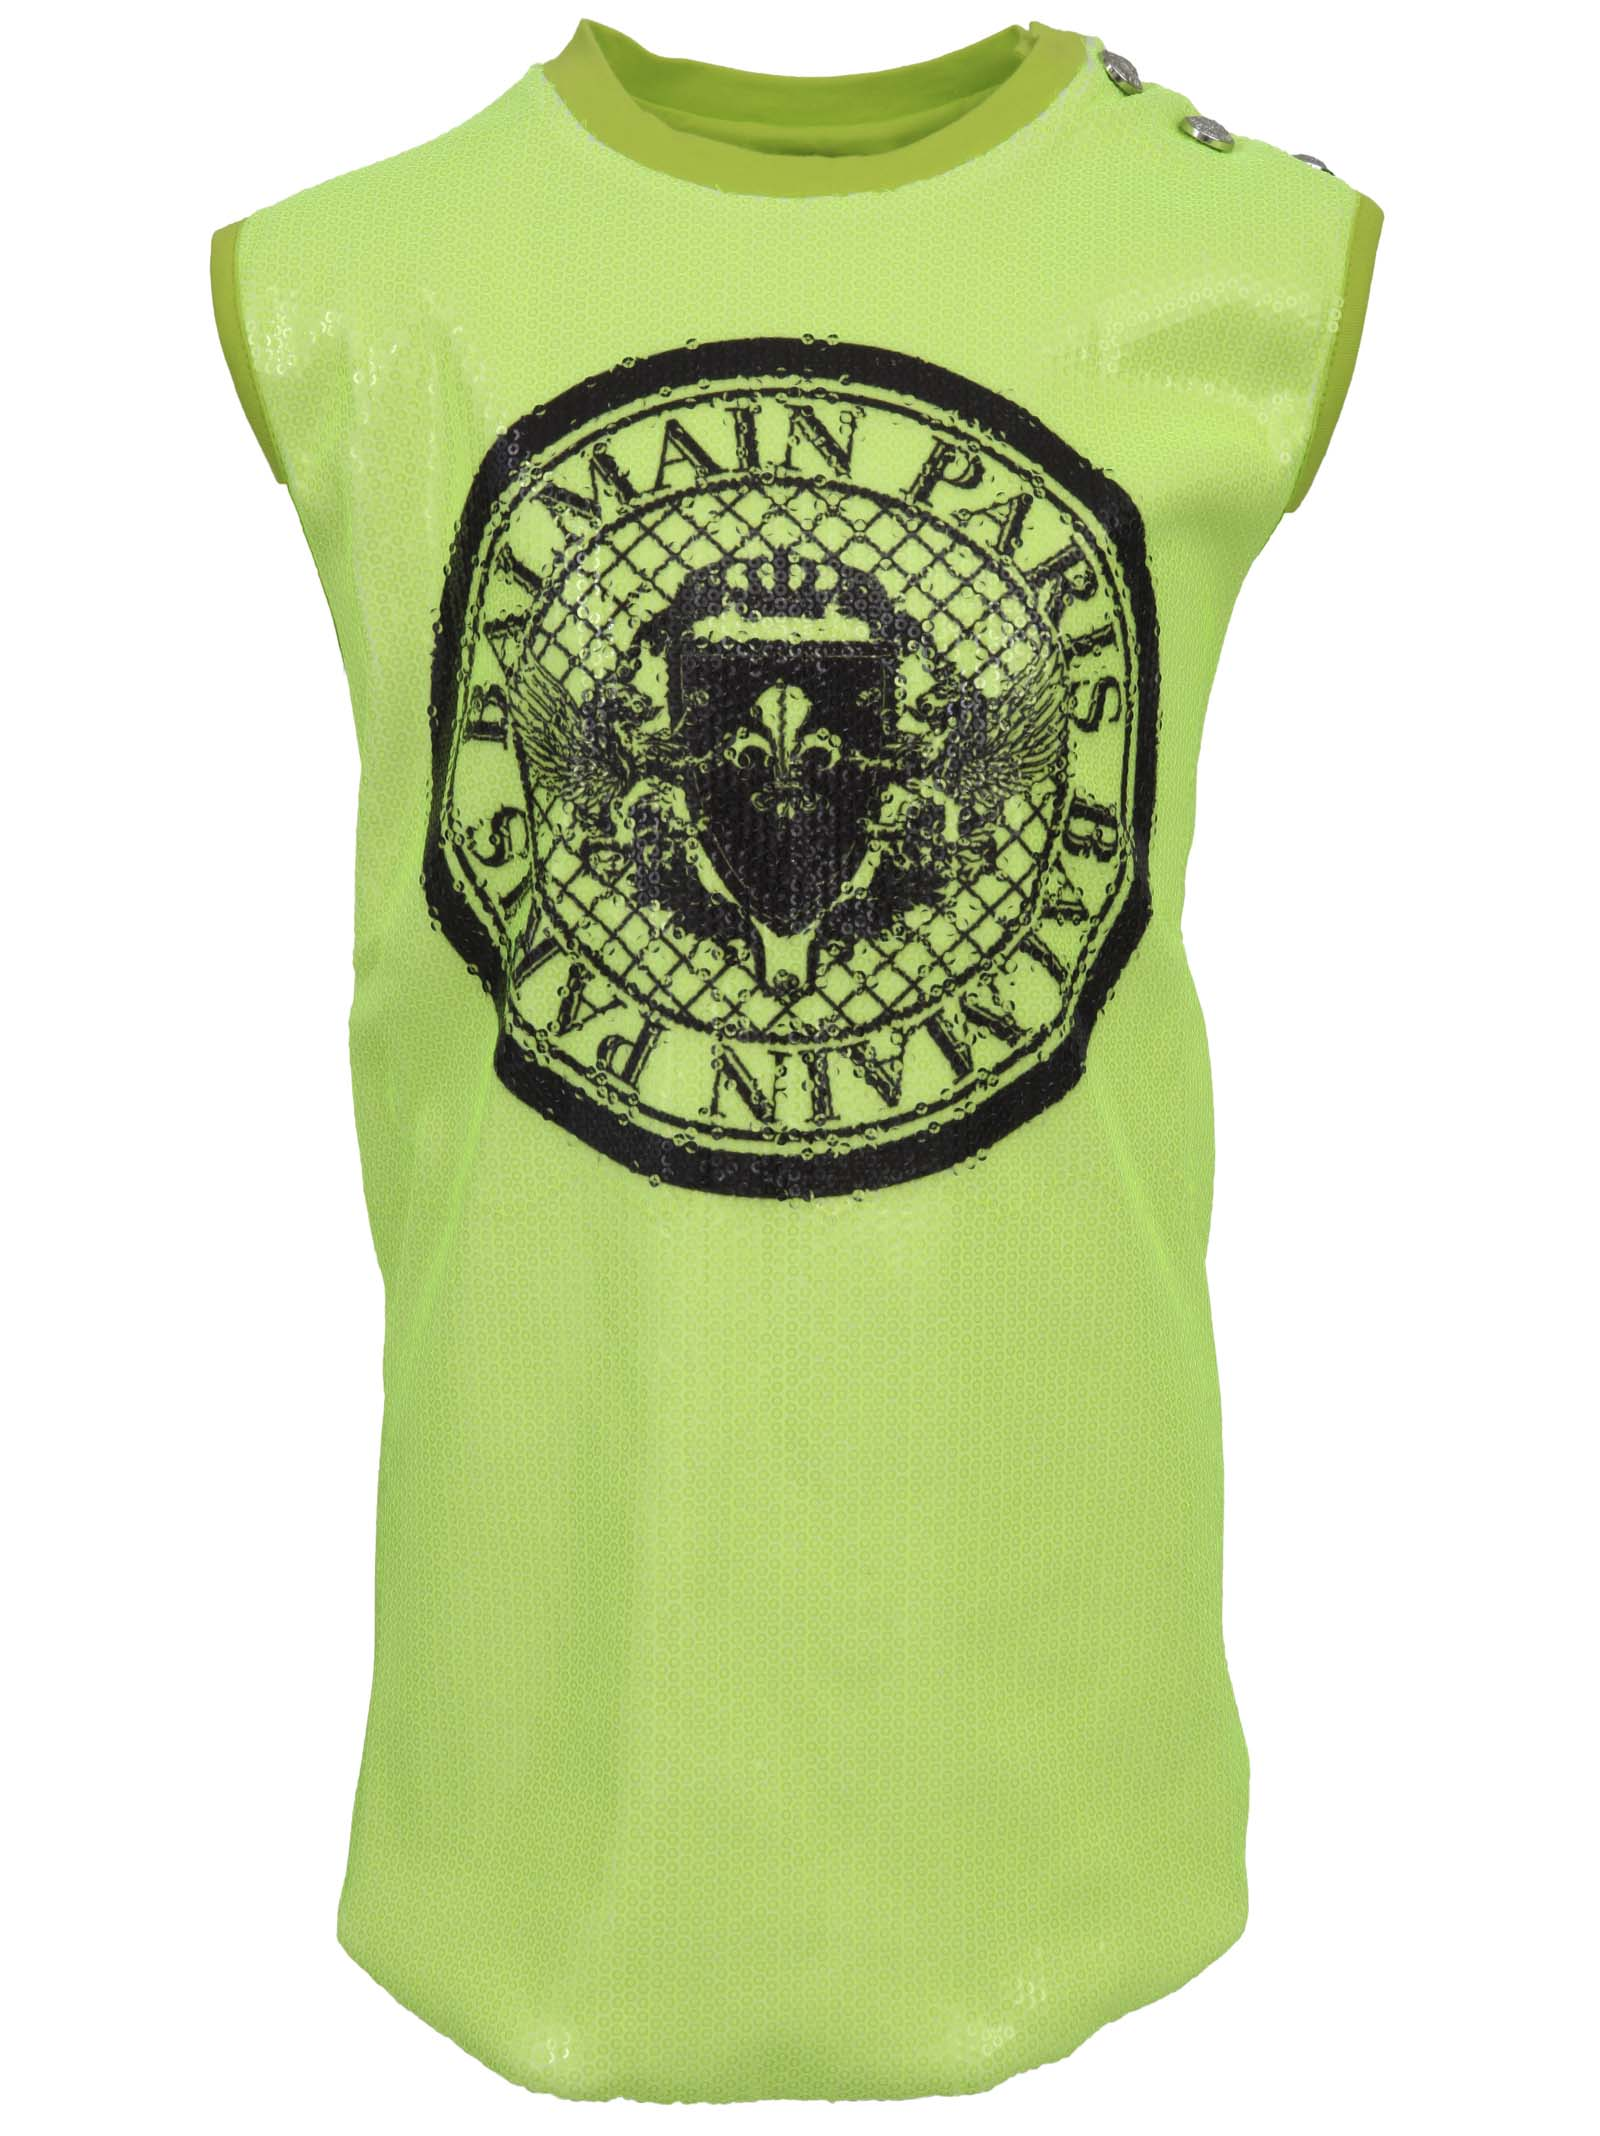 6e7d2ac84 Balmain Paris kids t-shirt - BALMAIN PARIS KIDS - Michele Franzese Moda